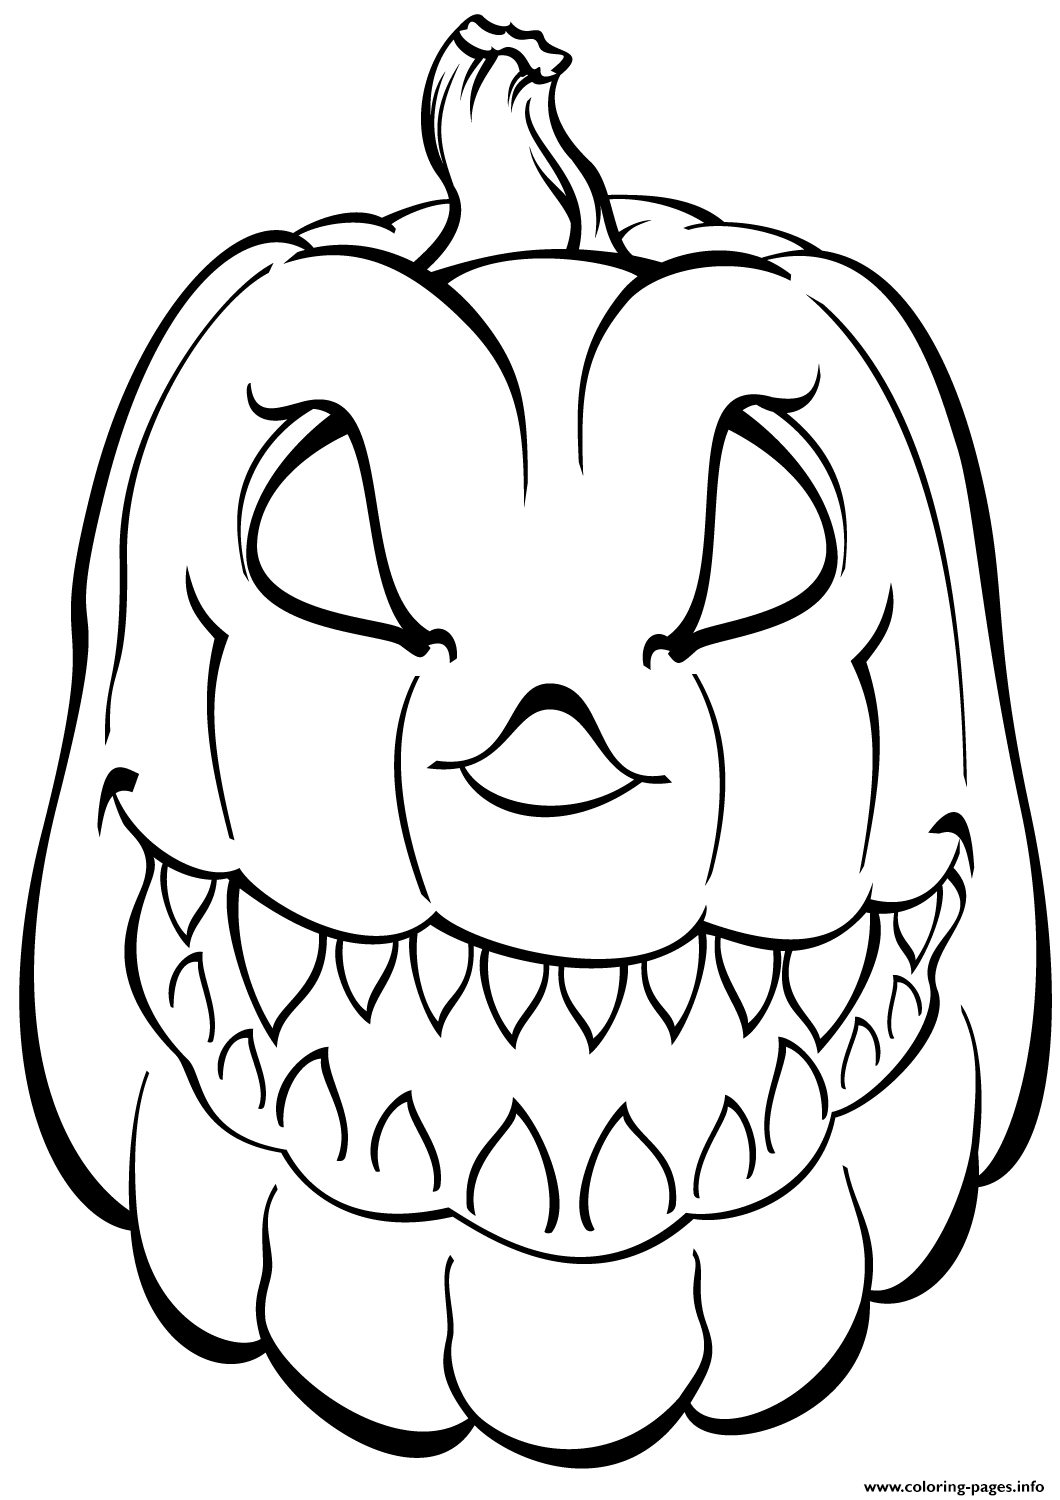 halloween pumpkin pictures to print and color 50 free printable halloween coloring pages for kids halloween pictures to print and color pumpkin